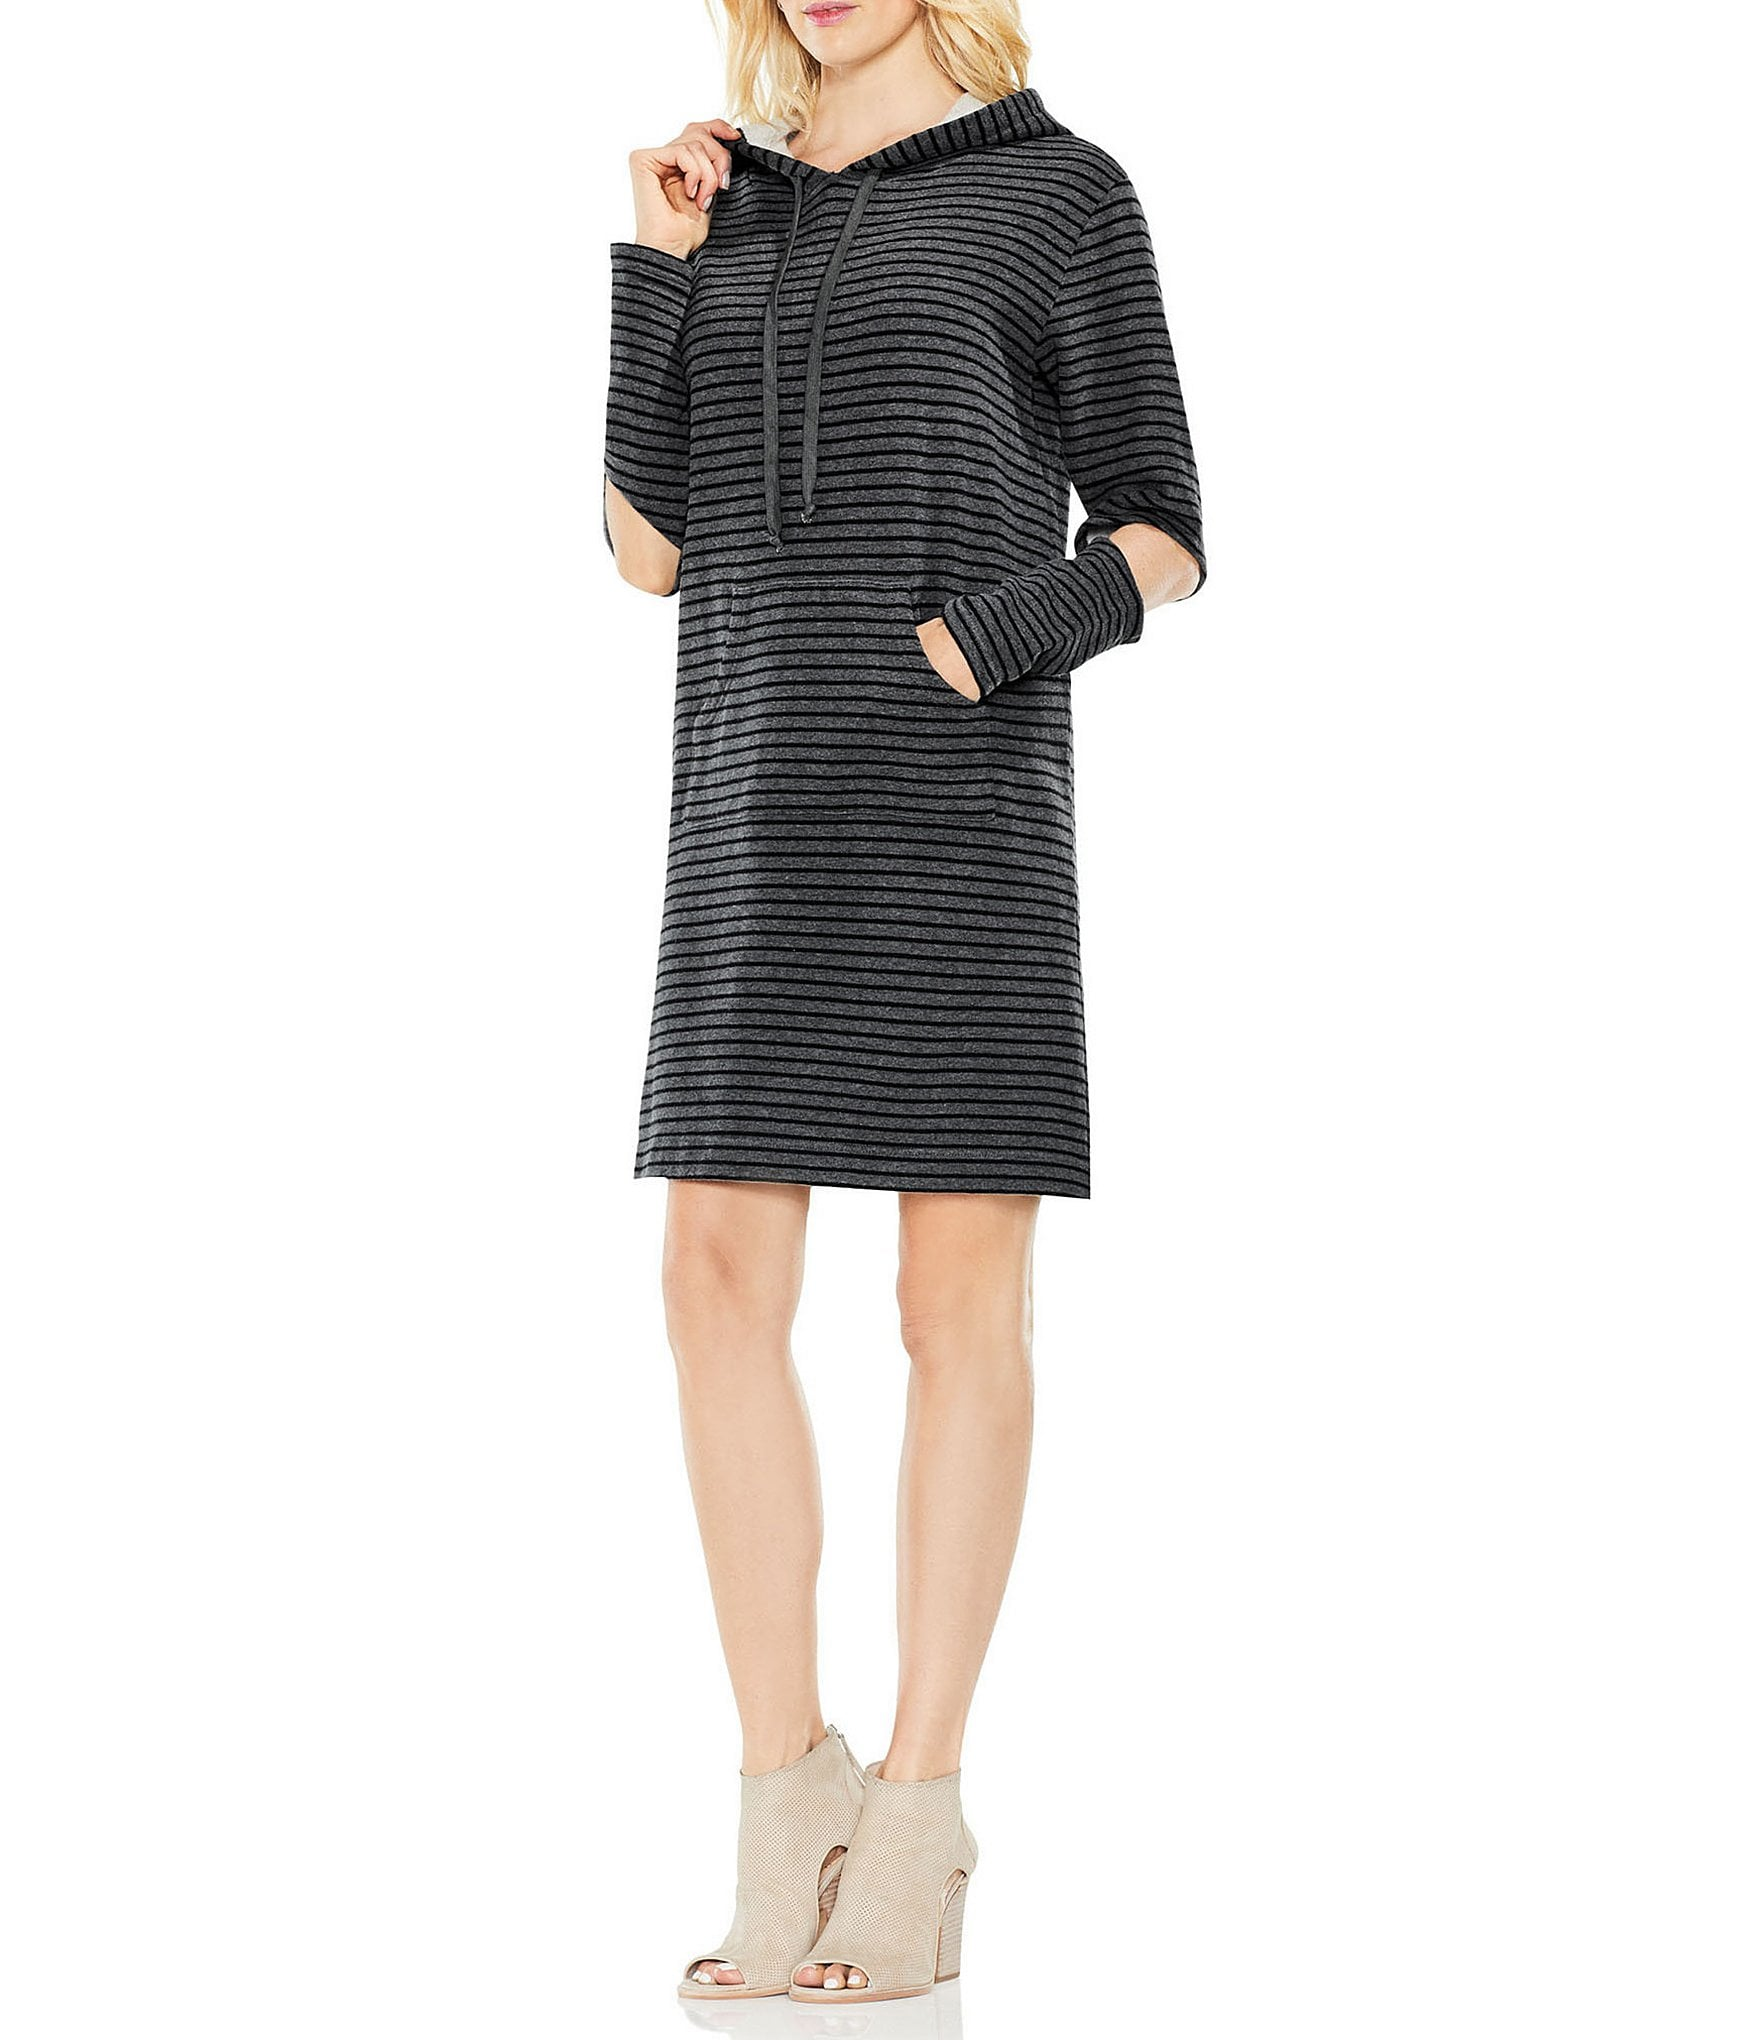 Long sleeve dress 6pm espadrilles